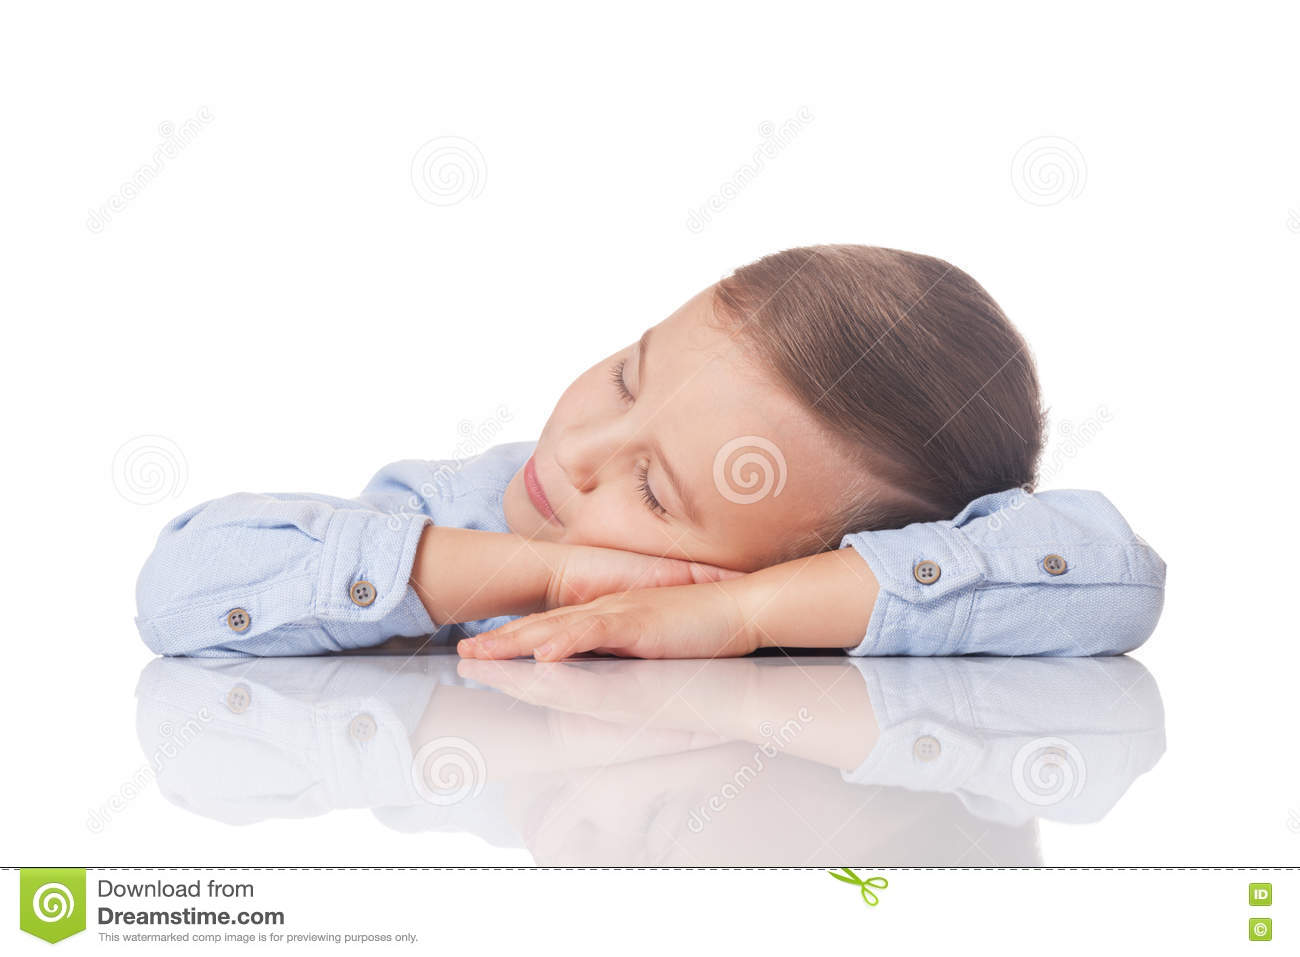 Download Day dreaming boy stock image. Image of child, happy, cute - 79054567